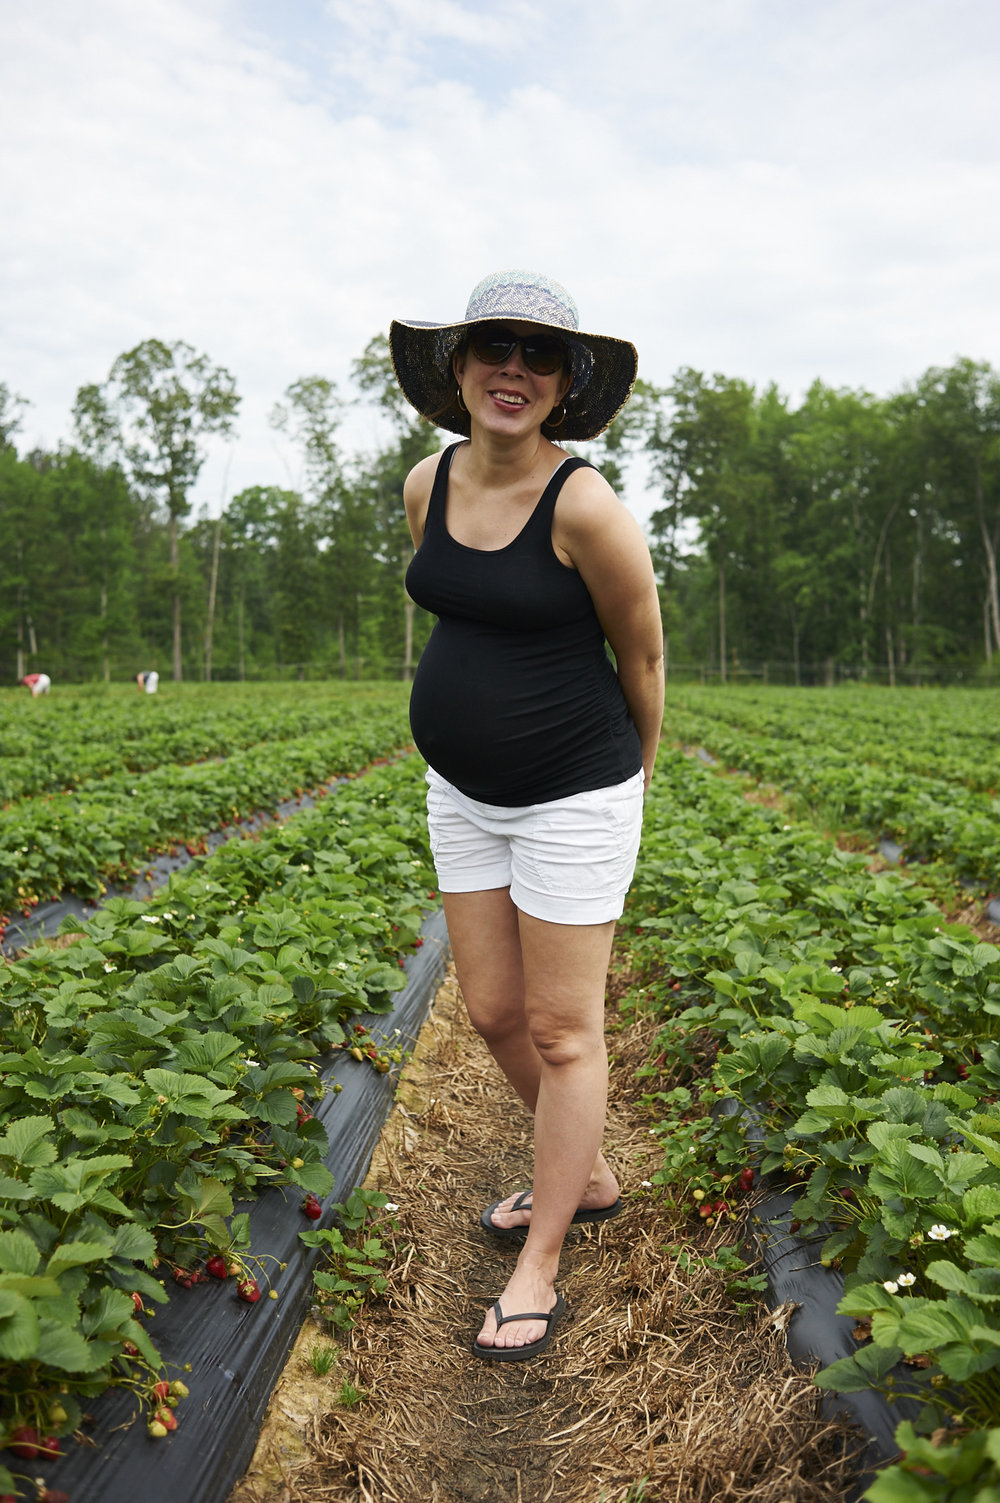 strawberry picking, lccl farm, rome, GA, family, lifestyle photography, its the everyday, pregnancy, motherhood, 35 weeks,